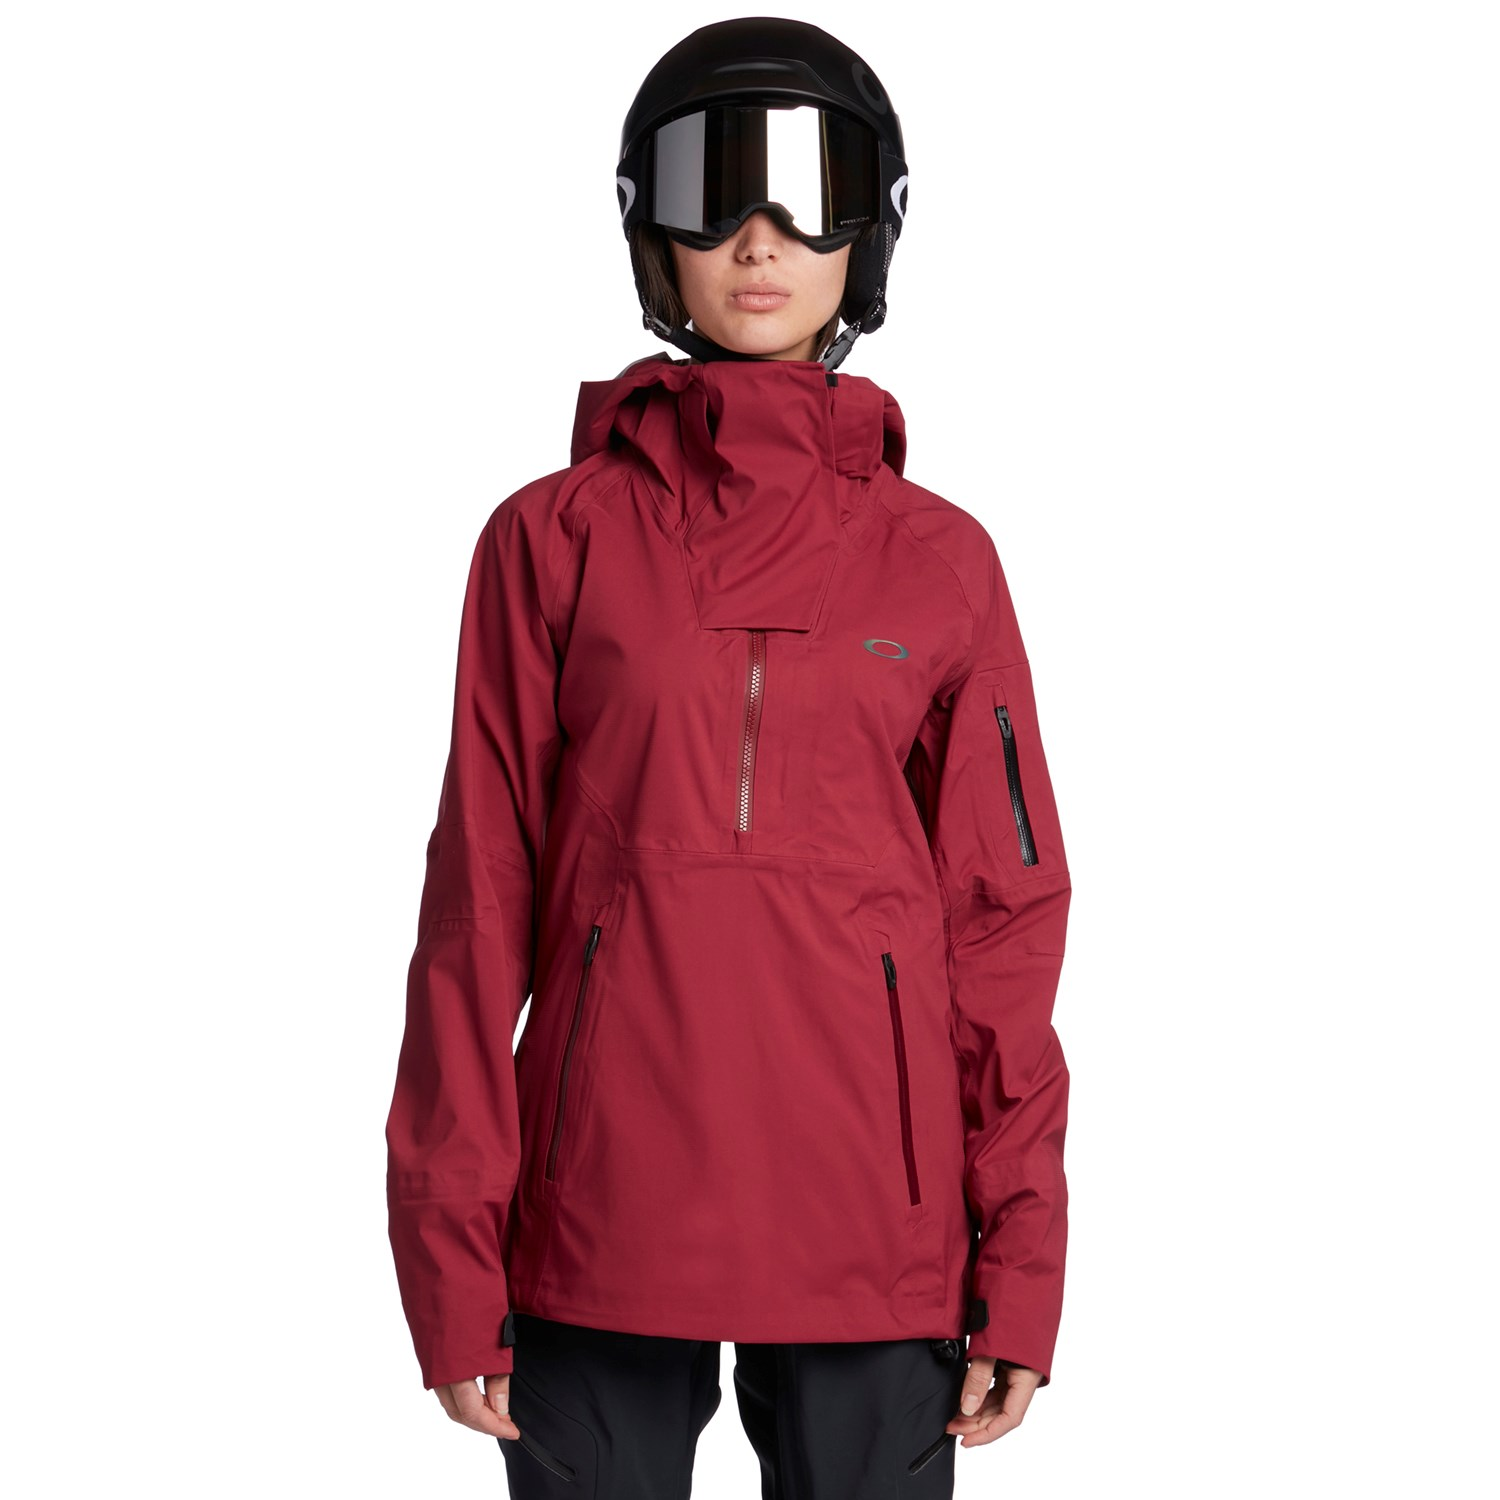 fe66c43426 Oakley Snow Shell 3L Anorak Jacket - Women s